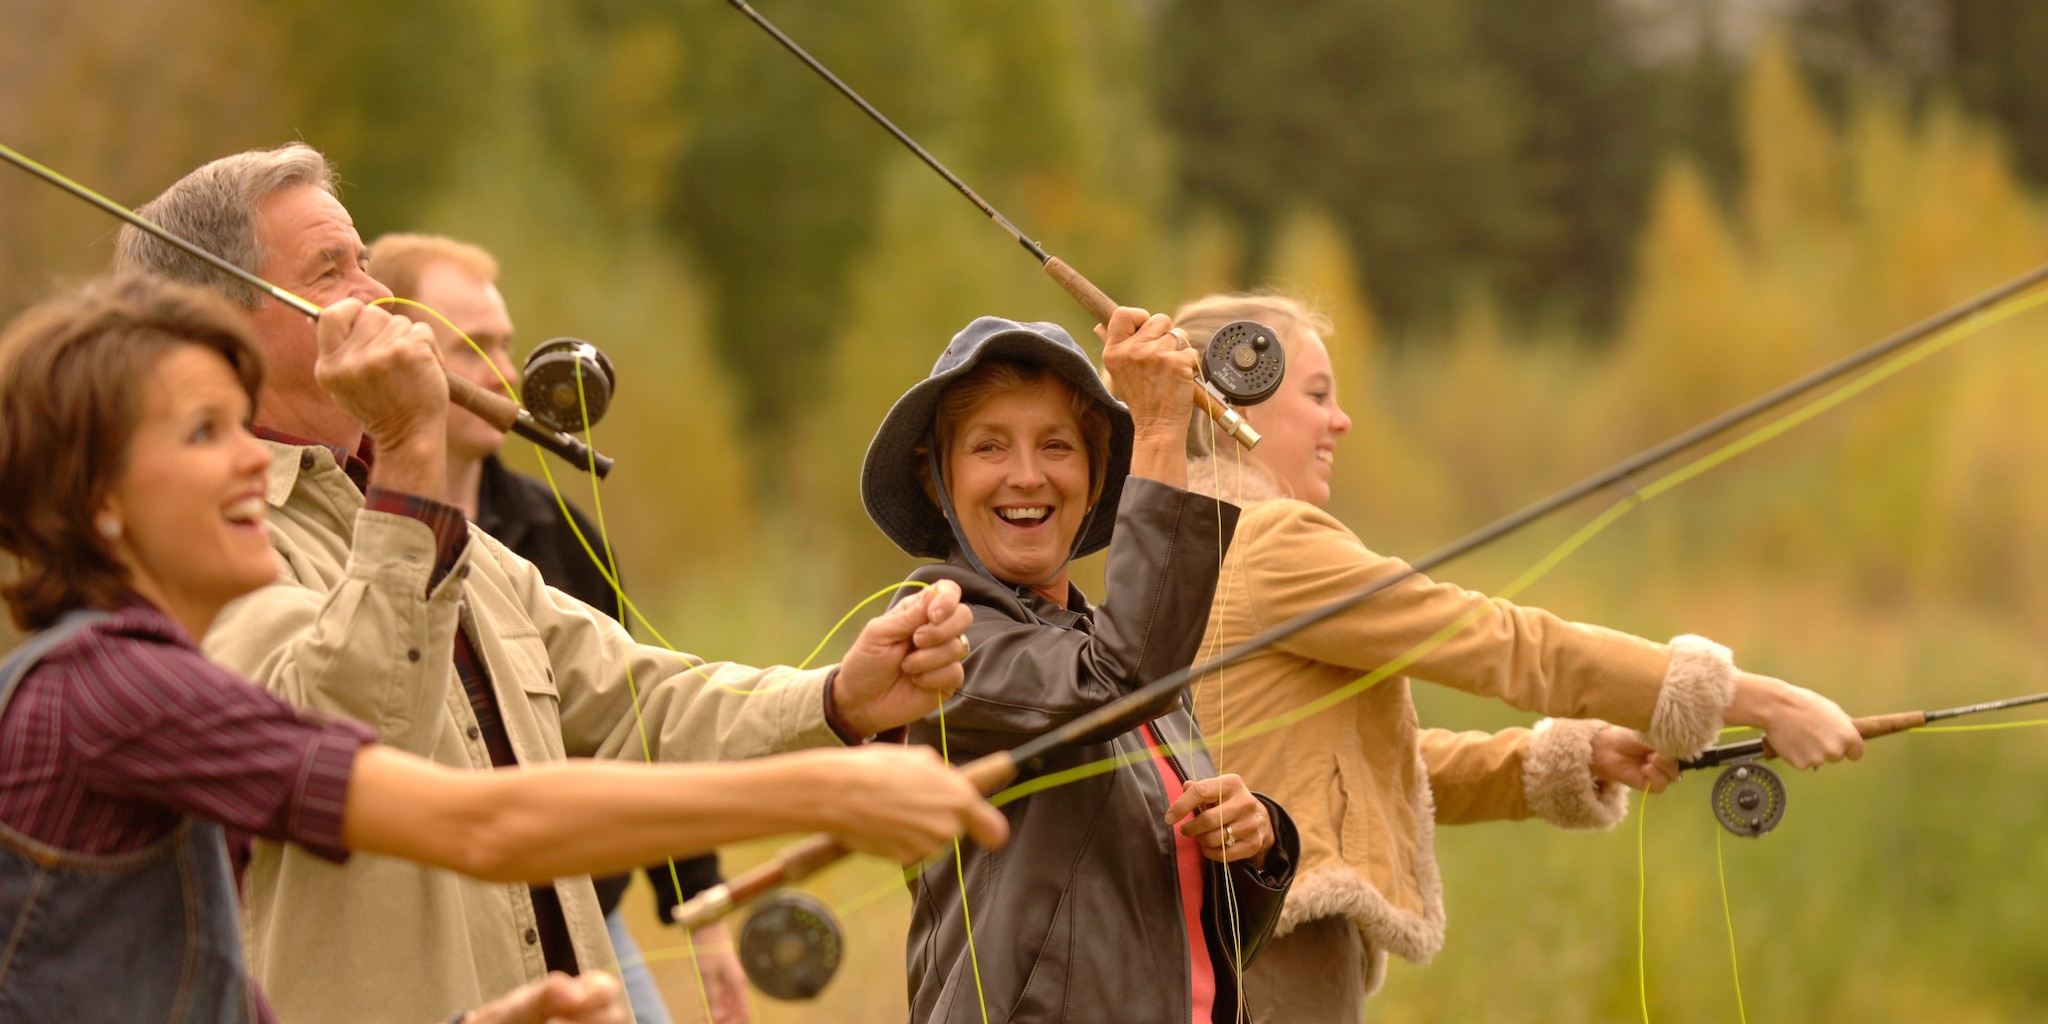 Several people casting fishing rods